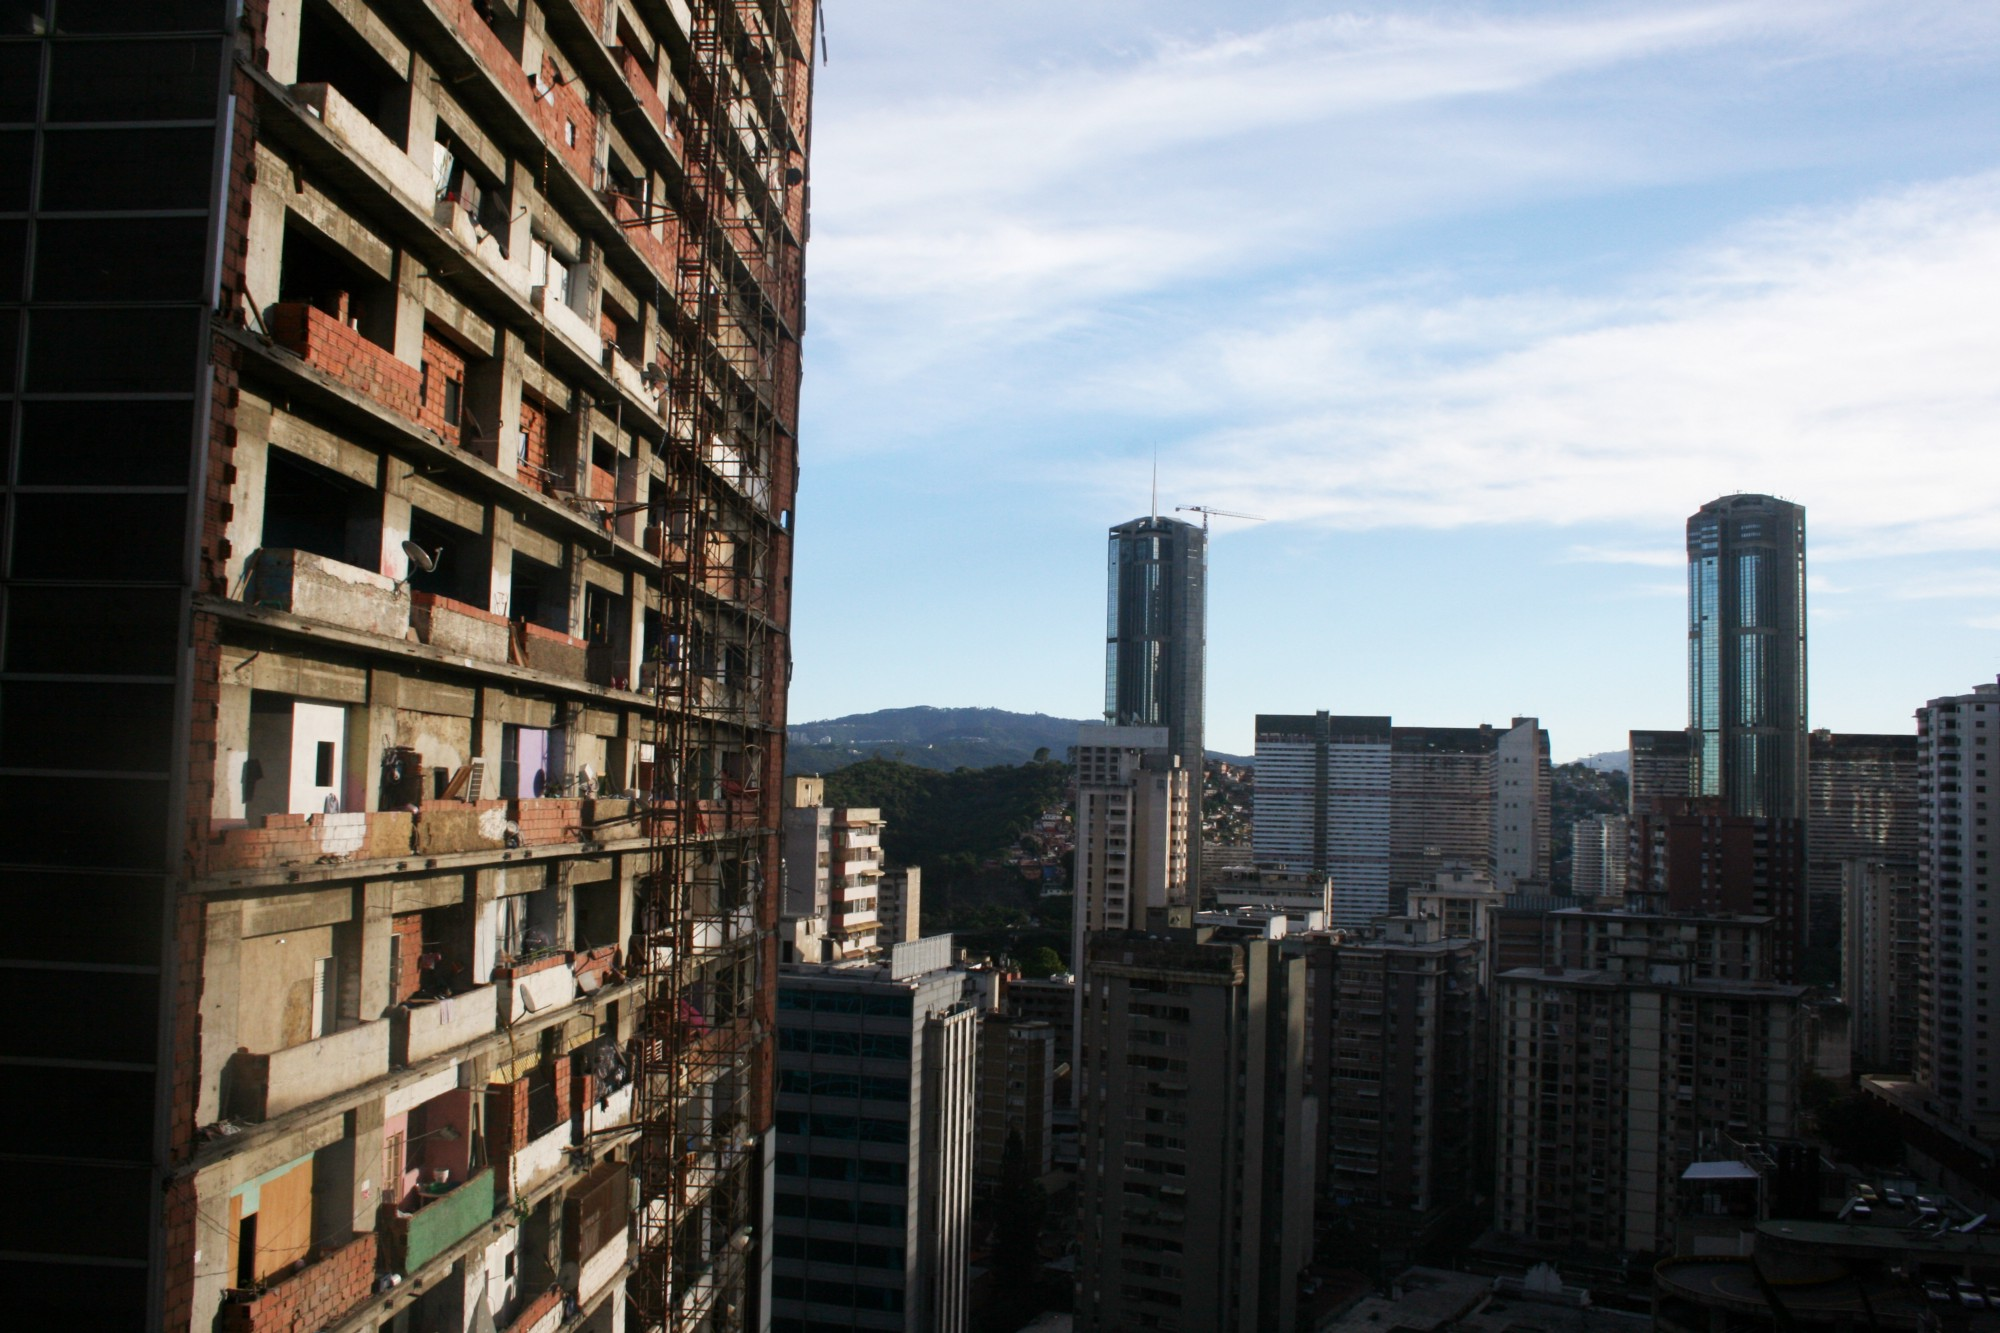 jj amaworo wilson brings magical realism to caracas tower of david